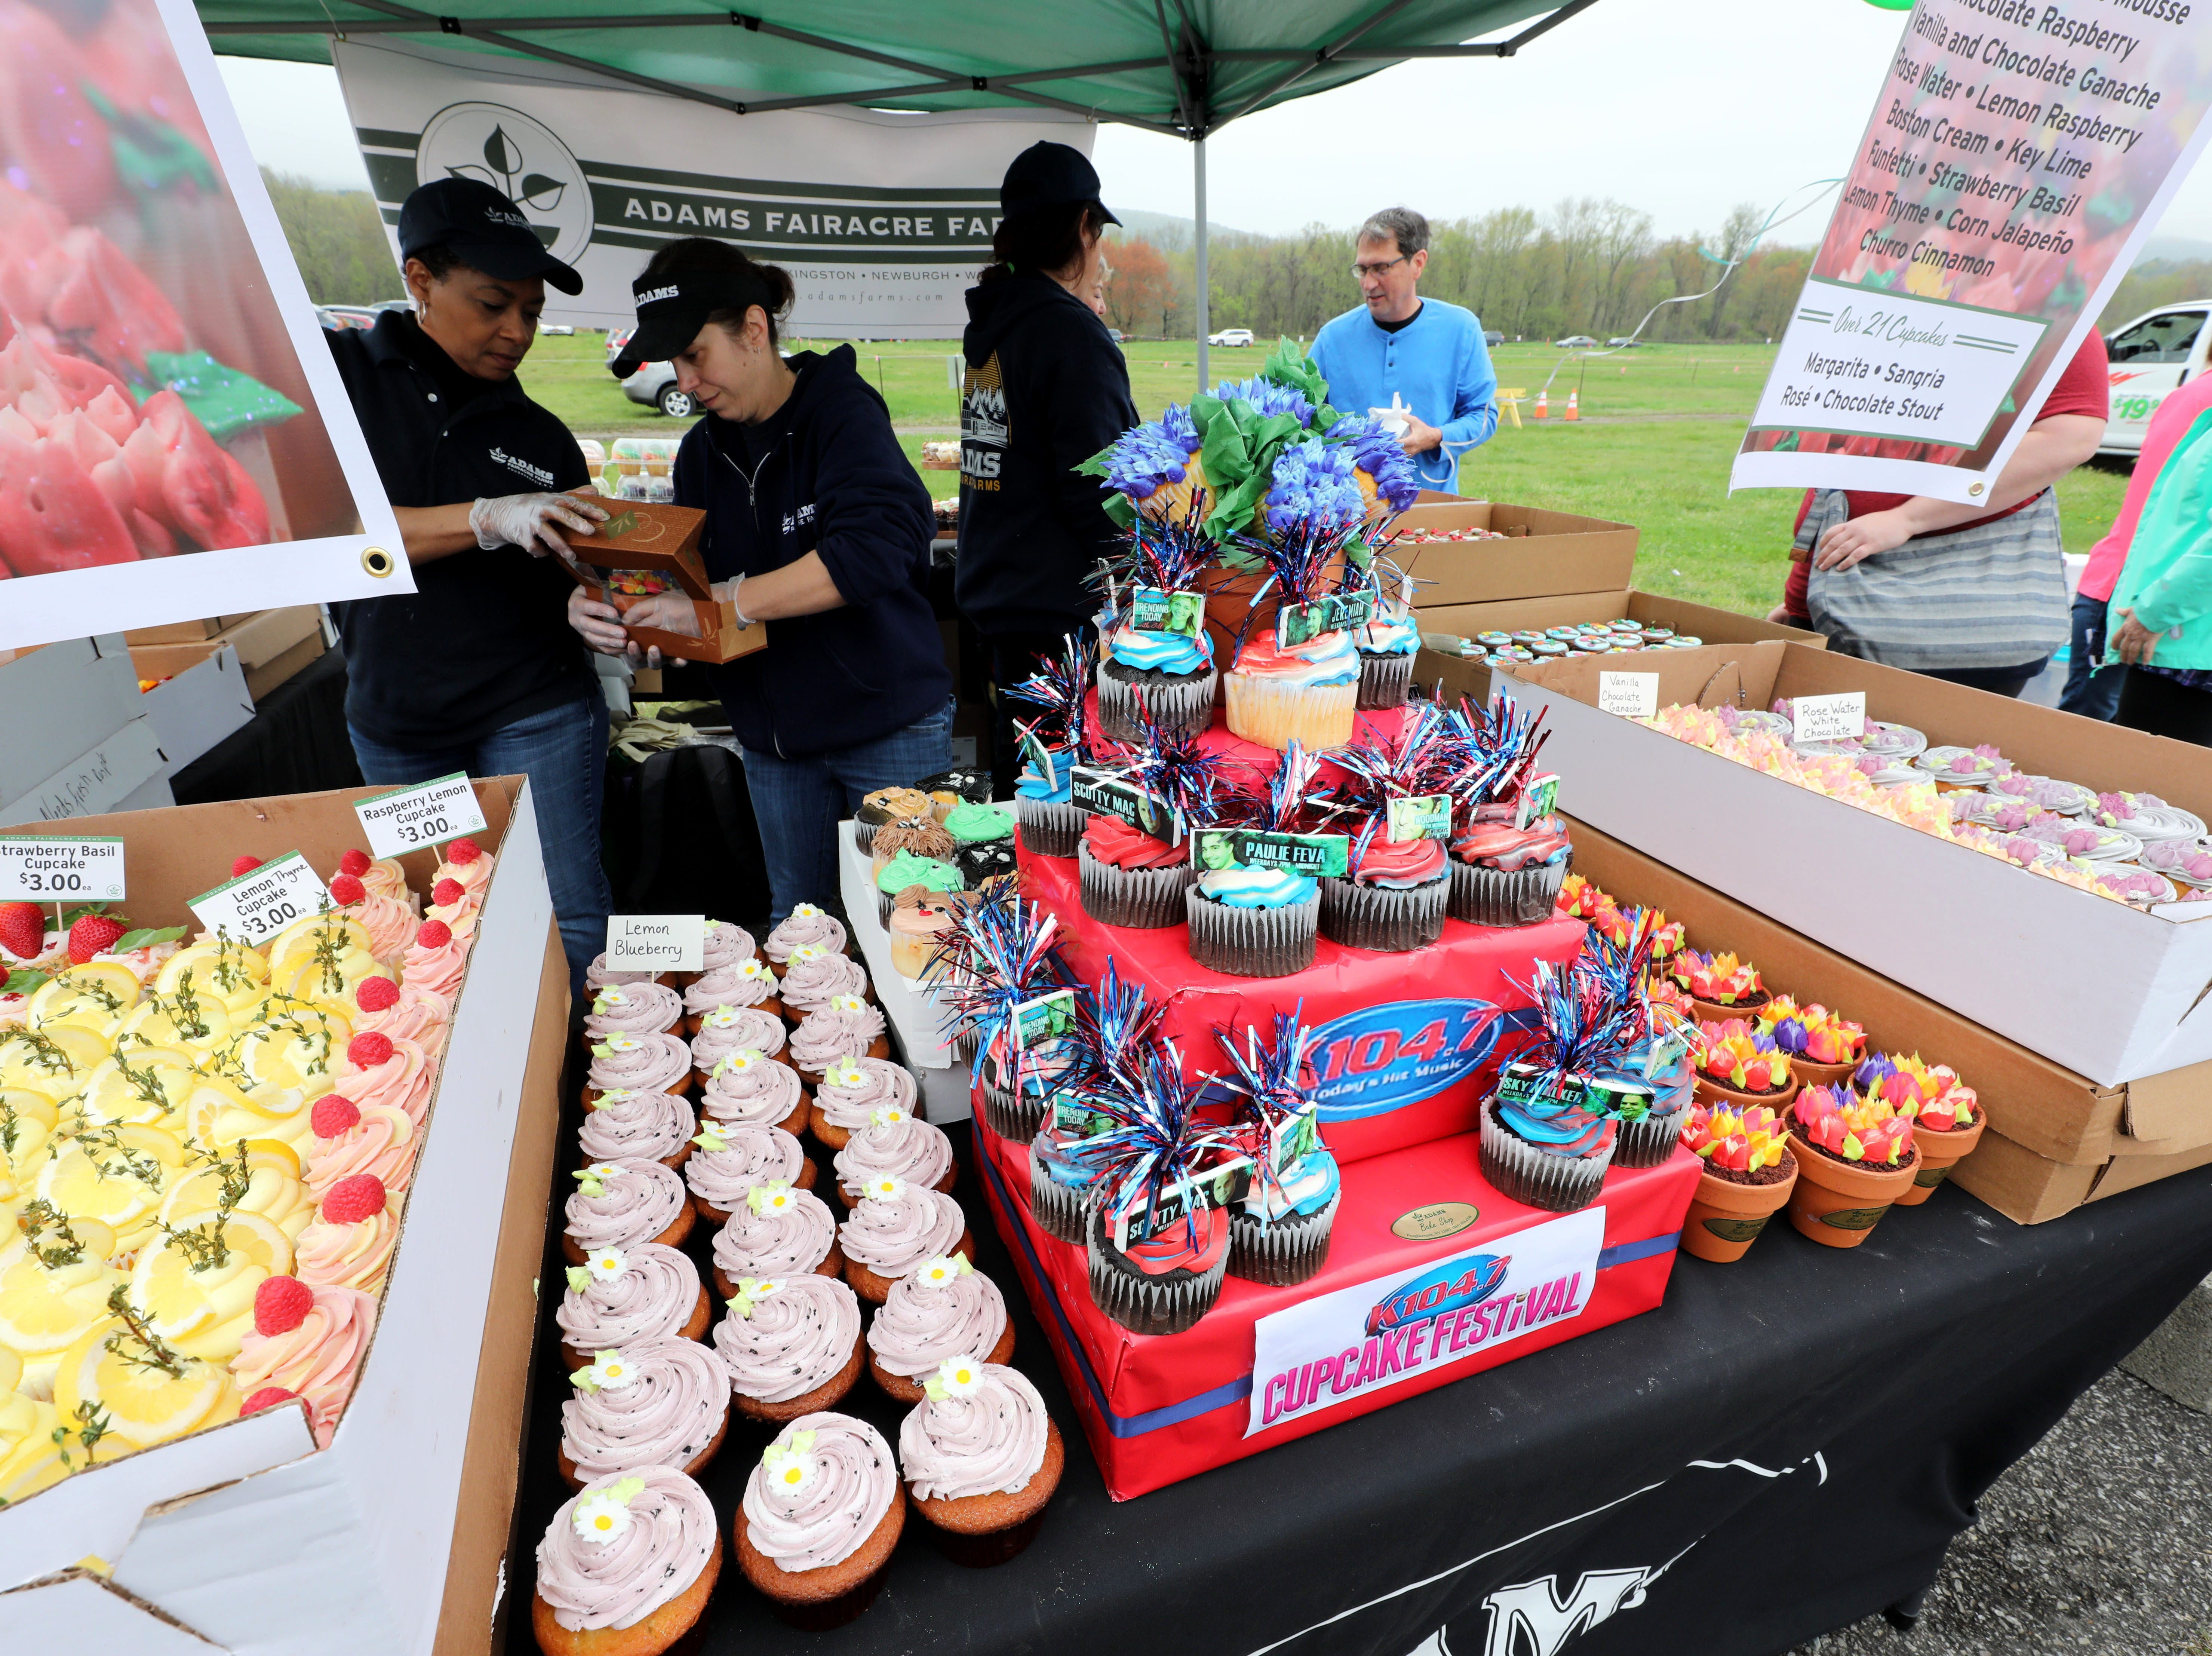 A variety of cupcakes at the start of the festival are pictured at the Adam's Fairacre Farms booth, during the K104.7 Cupcake Festival at the Stormville Airport, May 4, 2019.